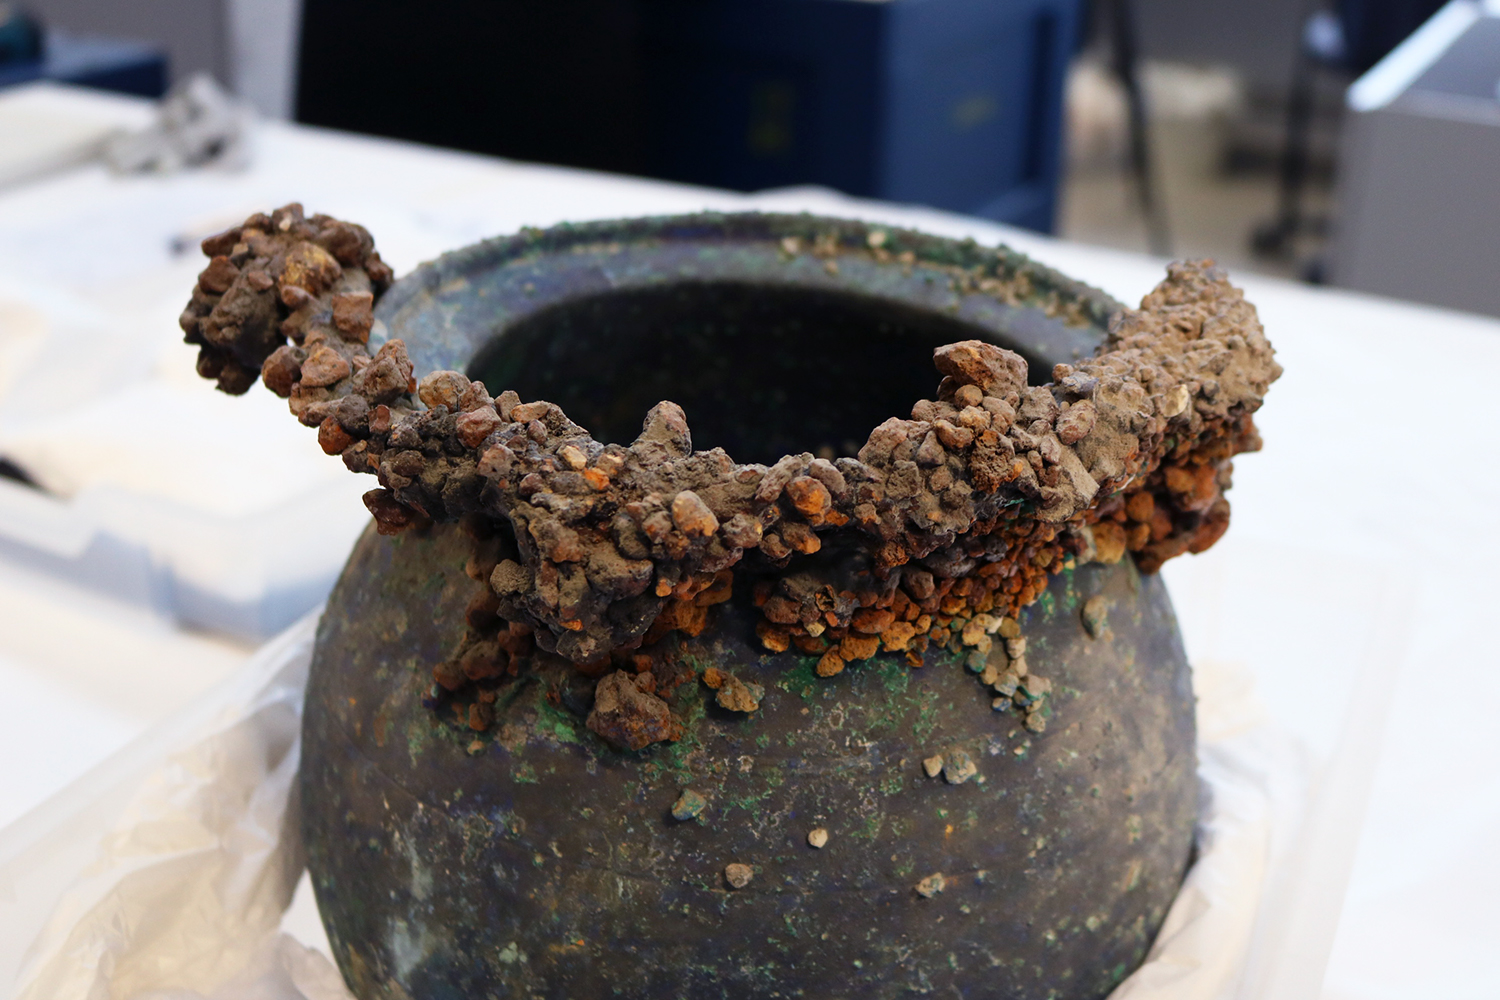 A 79AD pot encrusted with volcanic stones